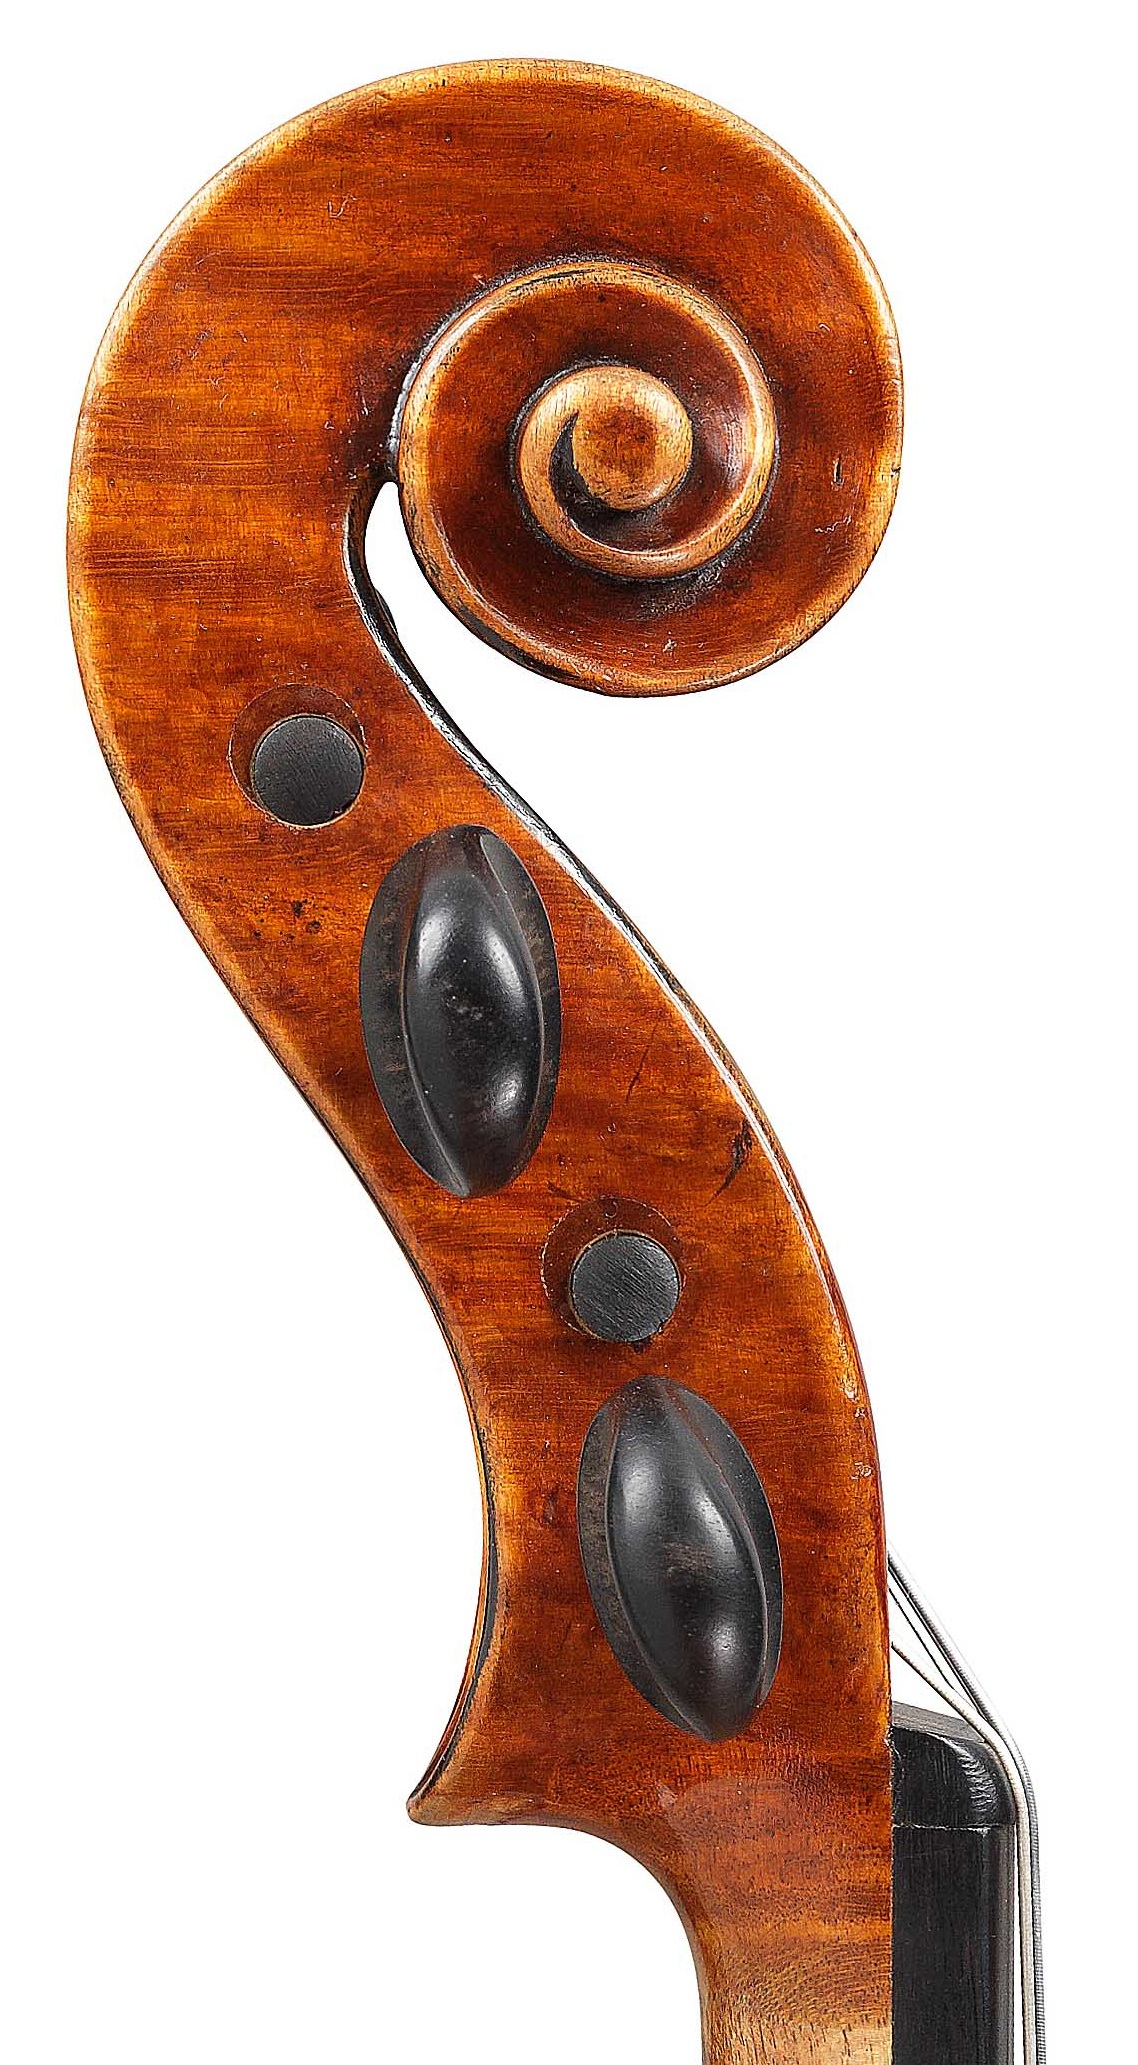 Scroll of violin by JB Vuillaume, St. Nicolas, dated 1872, exhibited by Ingles & Hayday at Sotheby's in 2012